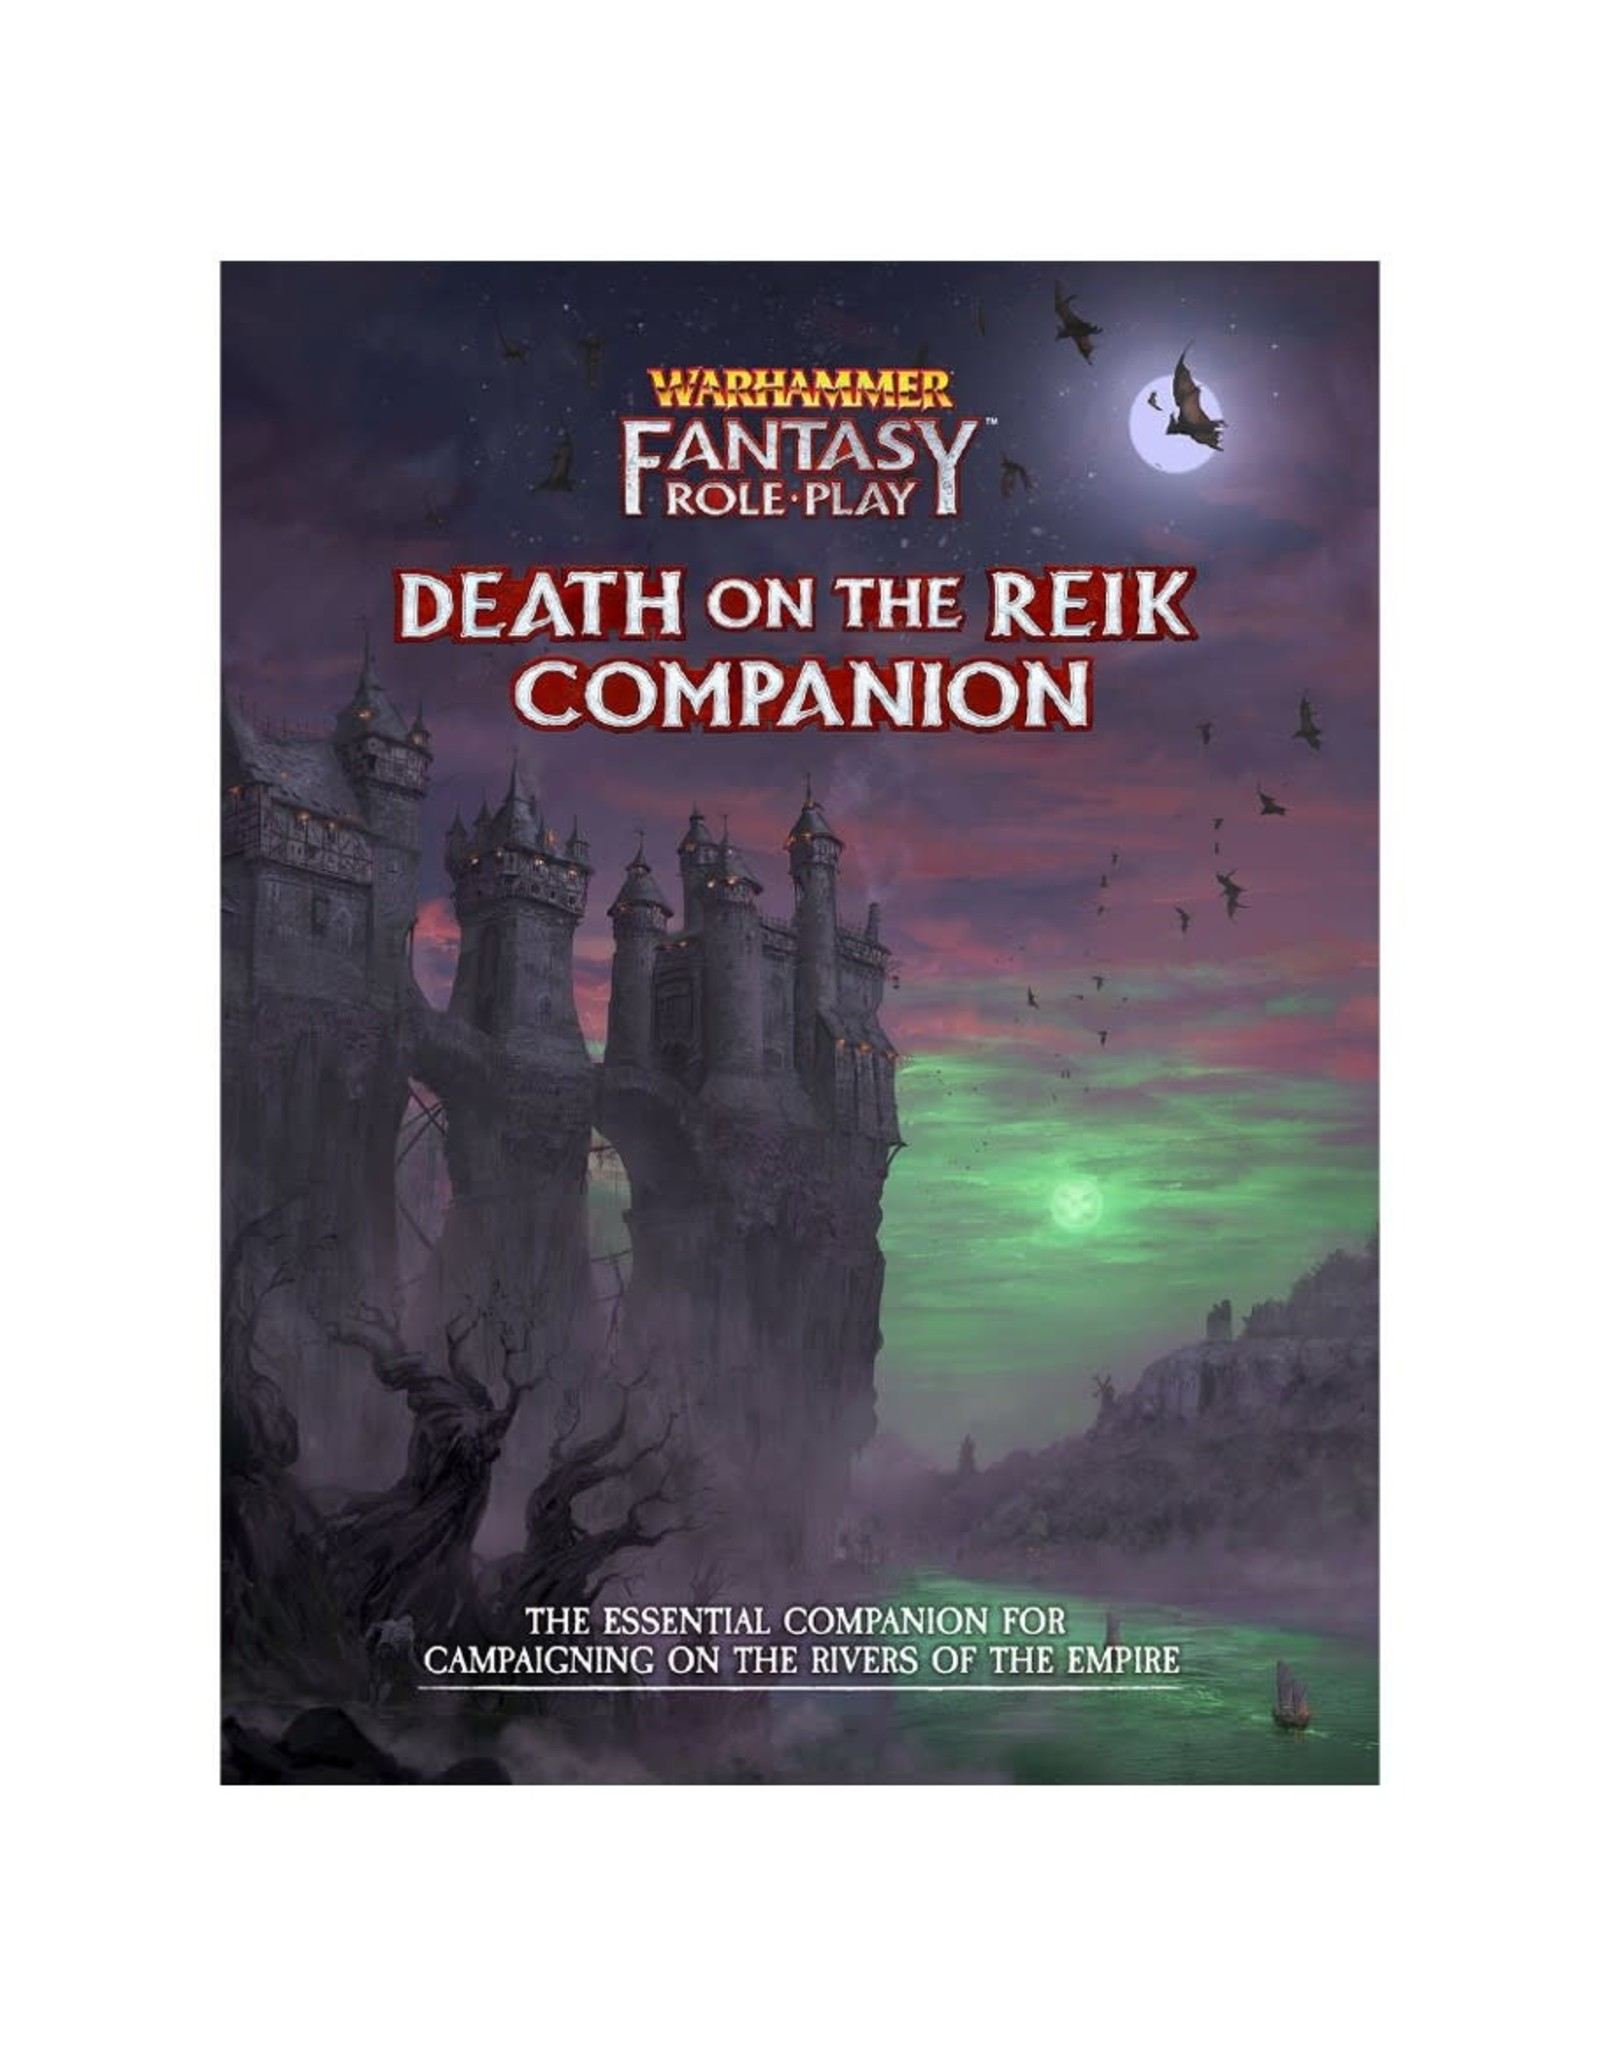 Cubicle Seven Enemy Within Vol. 2 - Death on the Reik Companion: Warhammer Fantasy RPG